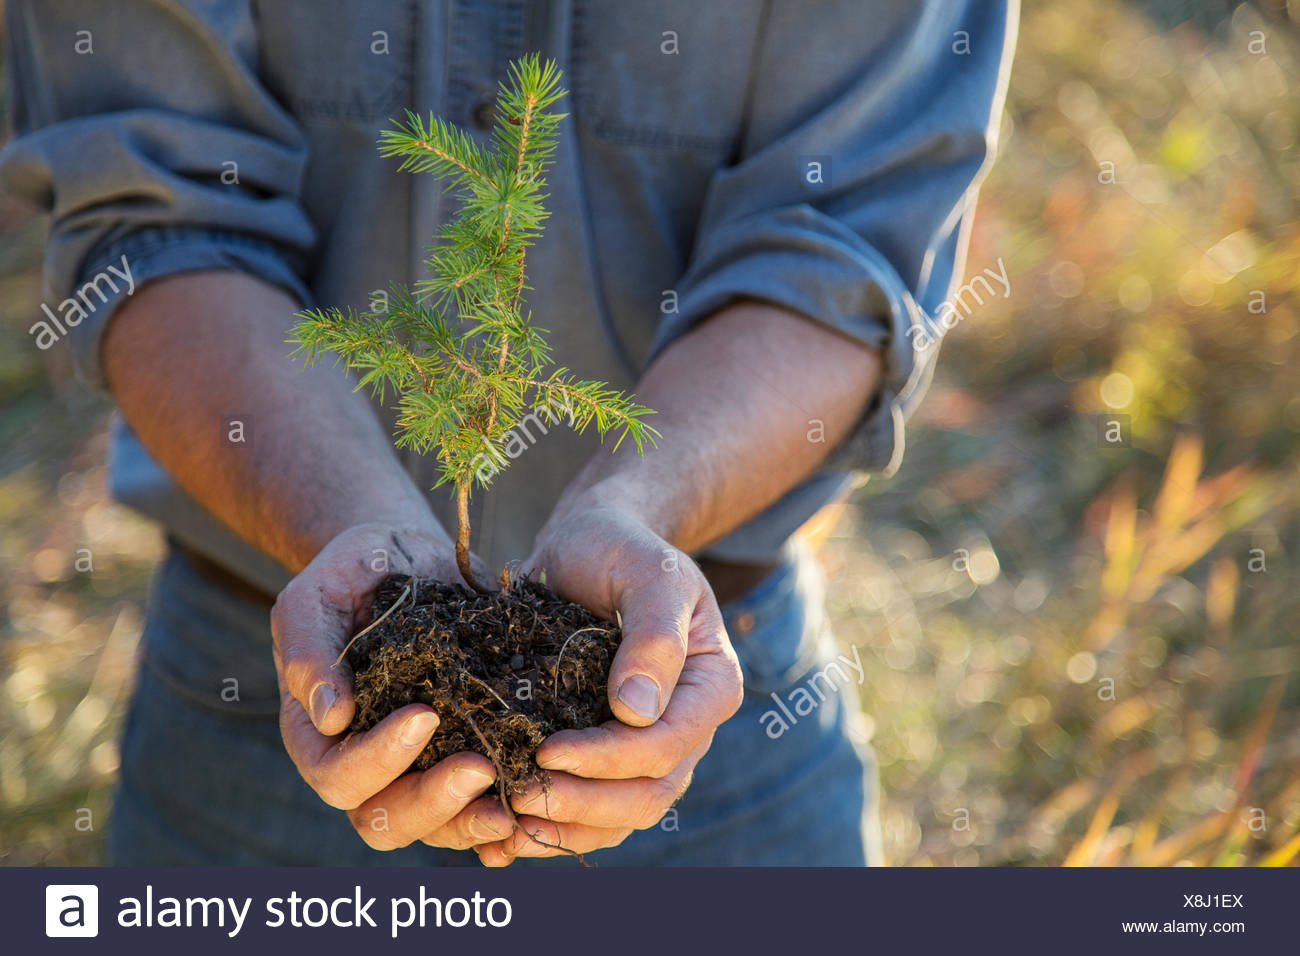 Man cupping tree sapling - Stock Image